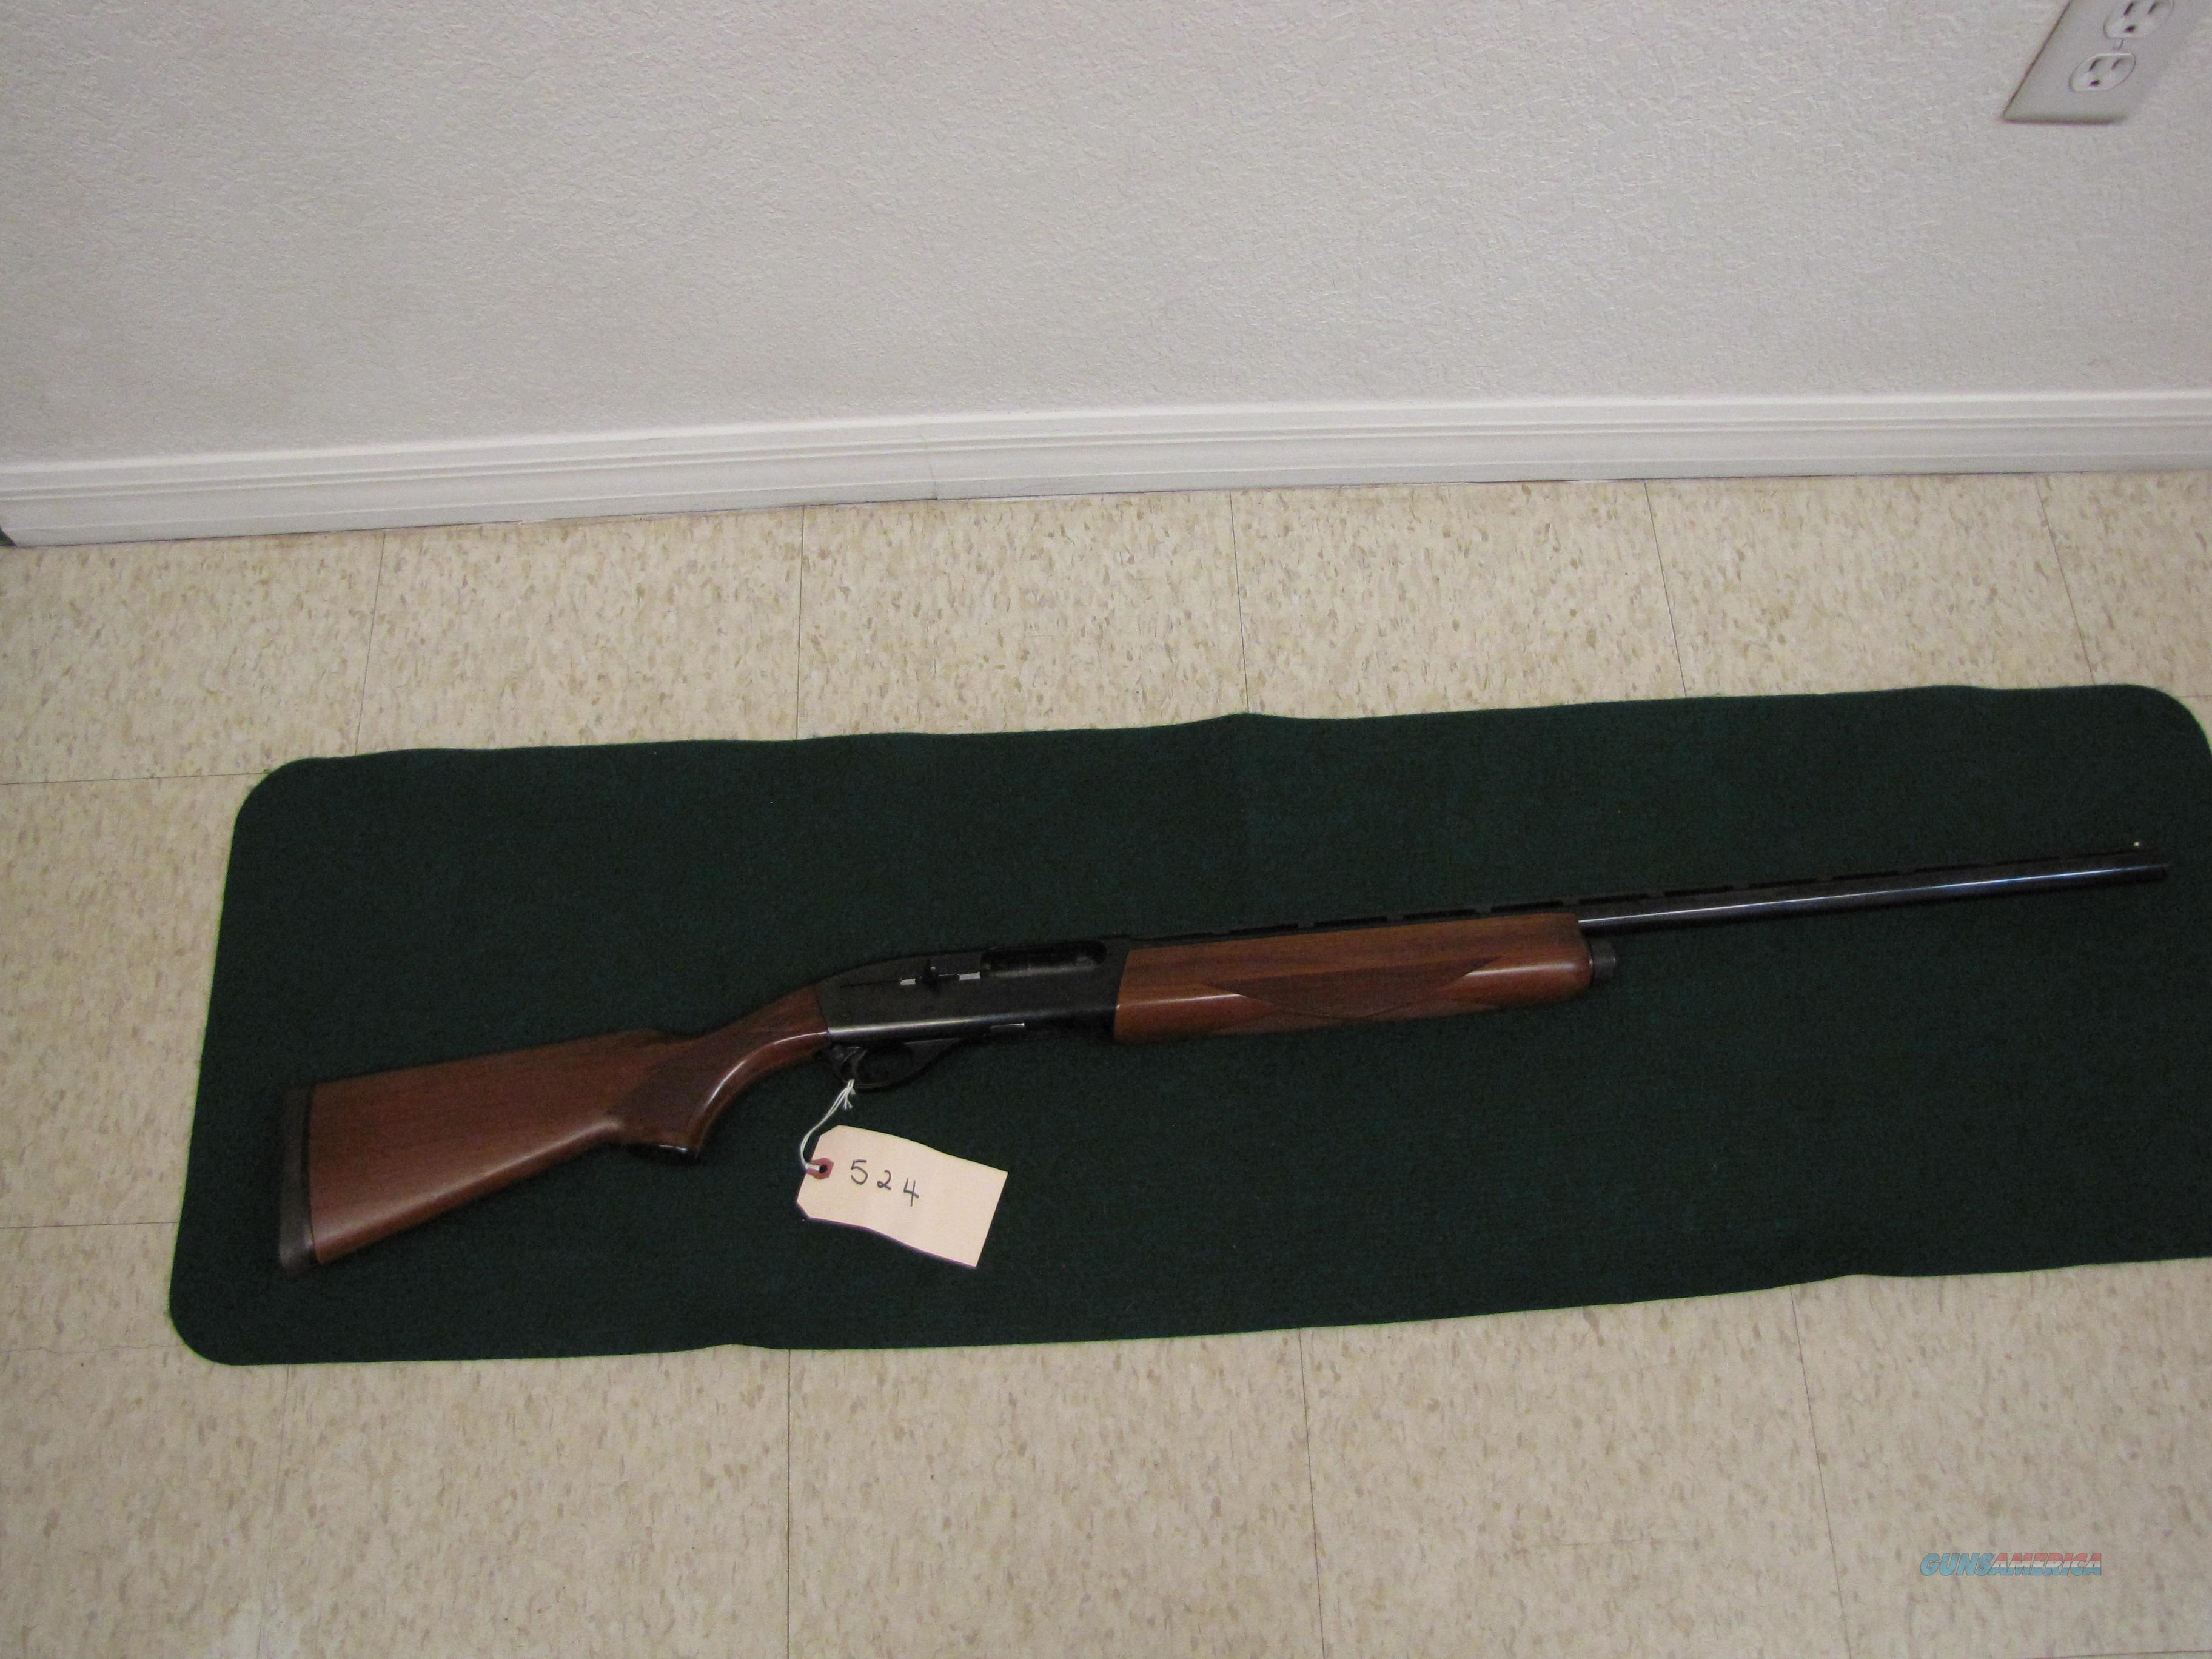 Remington 1187 Premier shotgun   Guns > Shotguns > Remington Shotguns  > Autoloaders > Hunting